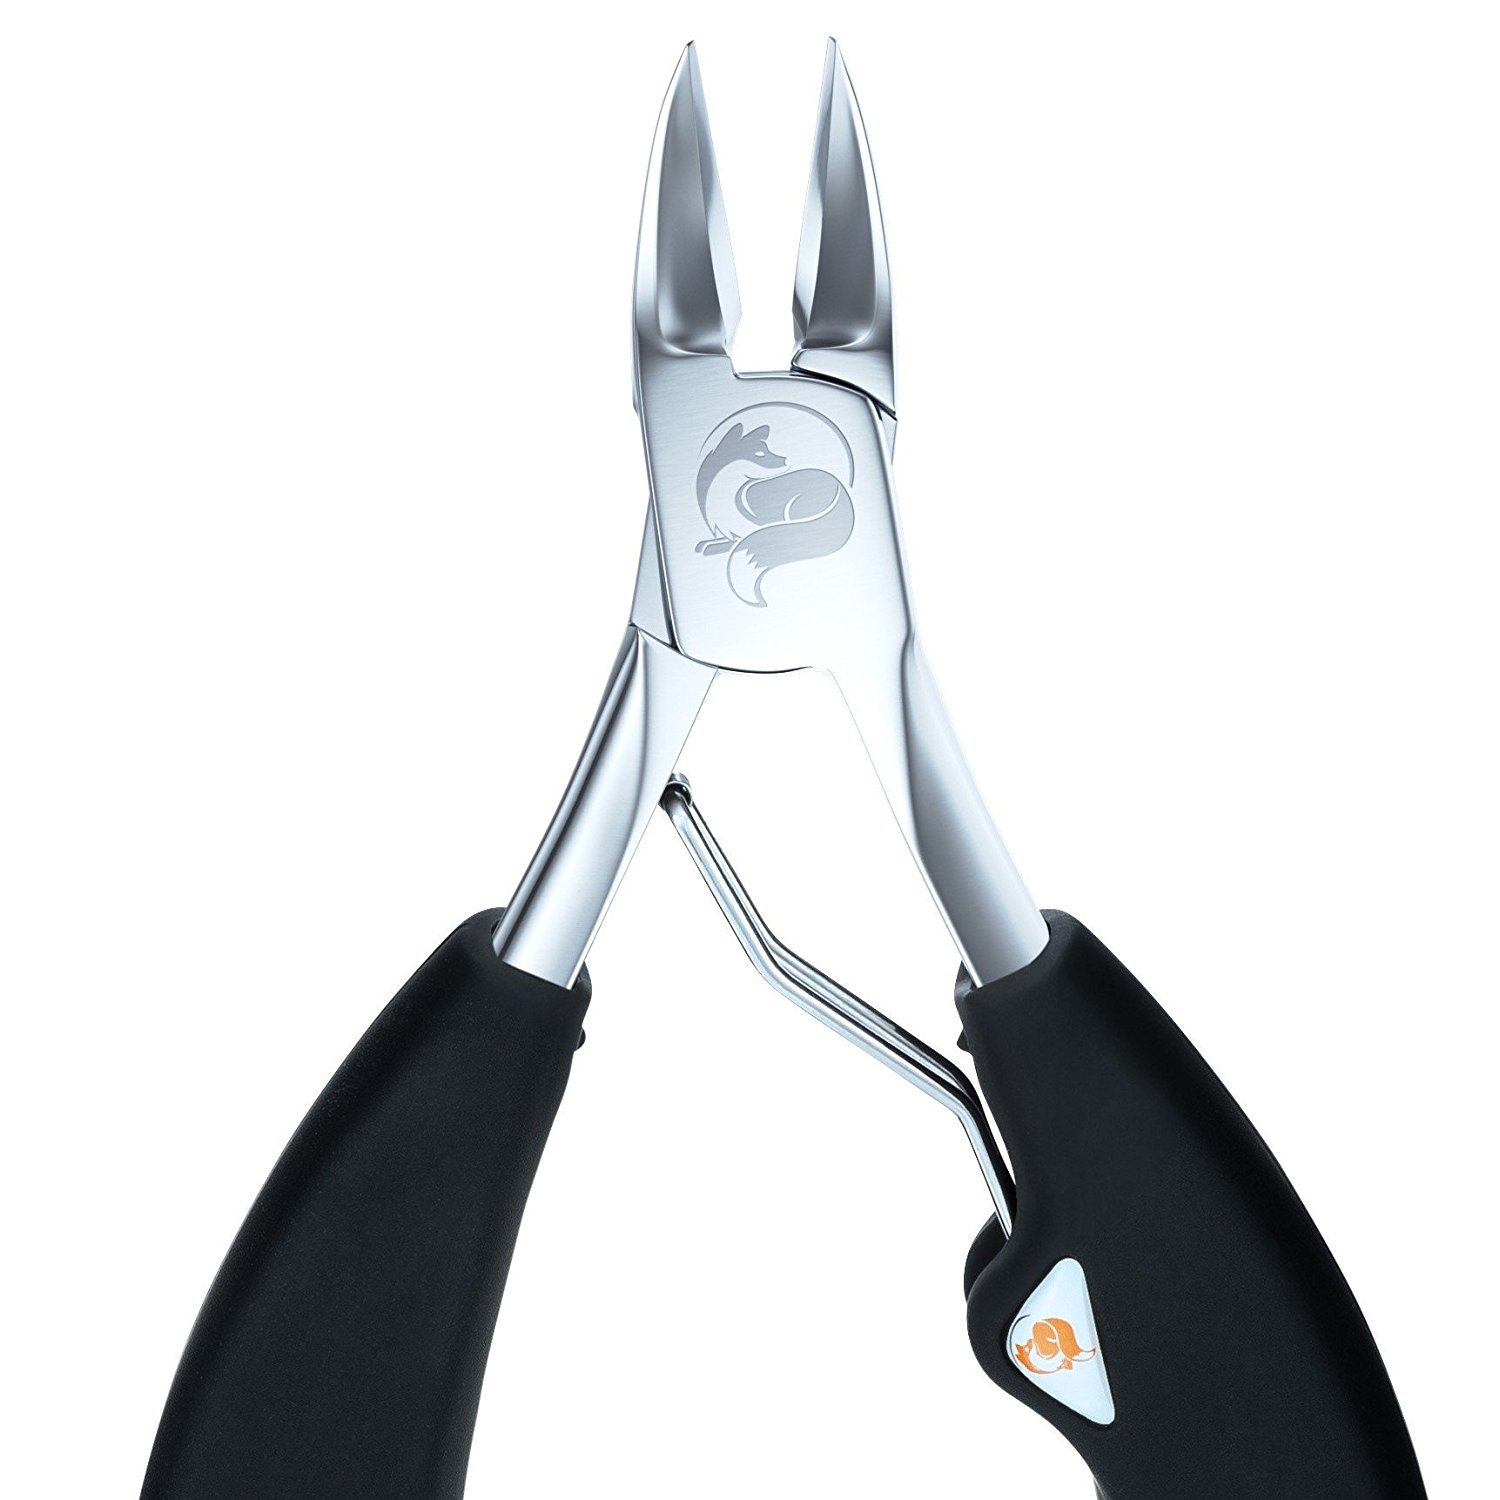 The Original Soft Grip Toenail Clippers by Fox Medical - Surgical Grade Stainless Steel Nail Nippers by Fox Medical Equipment